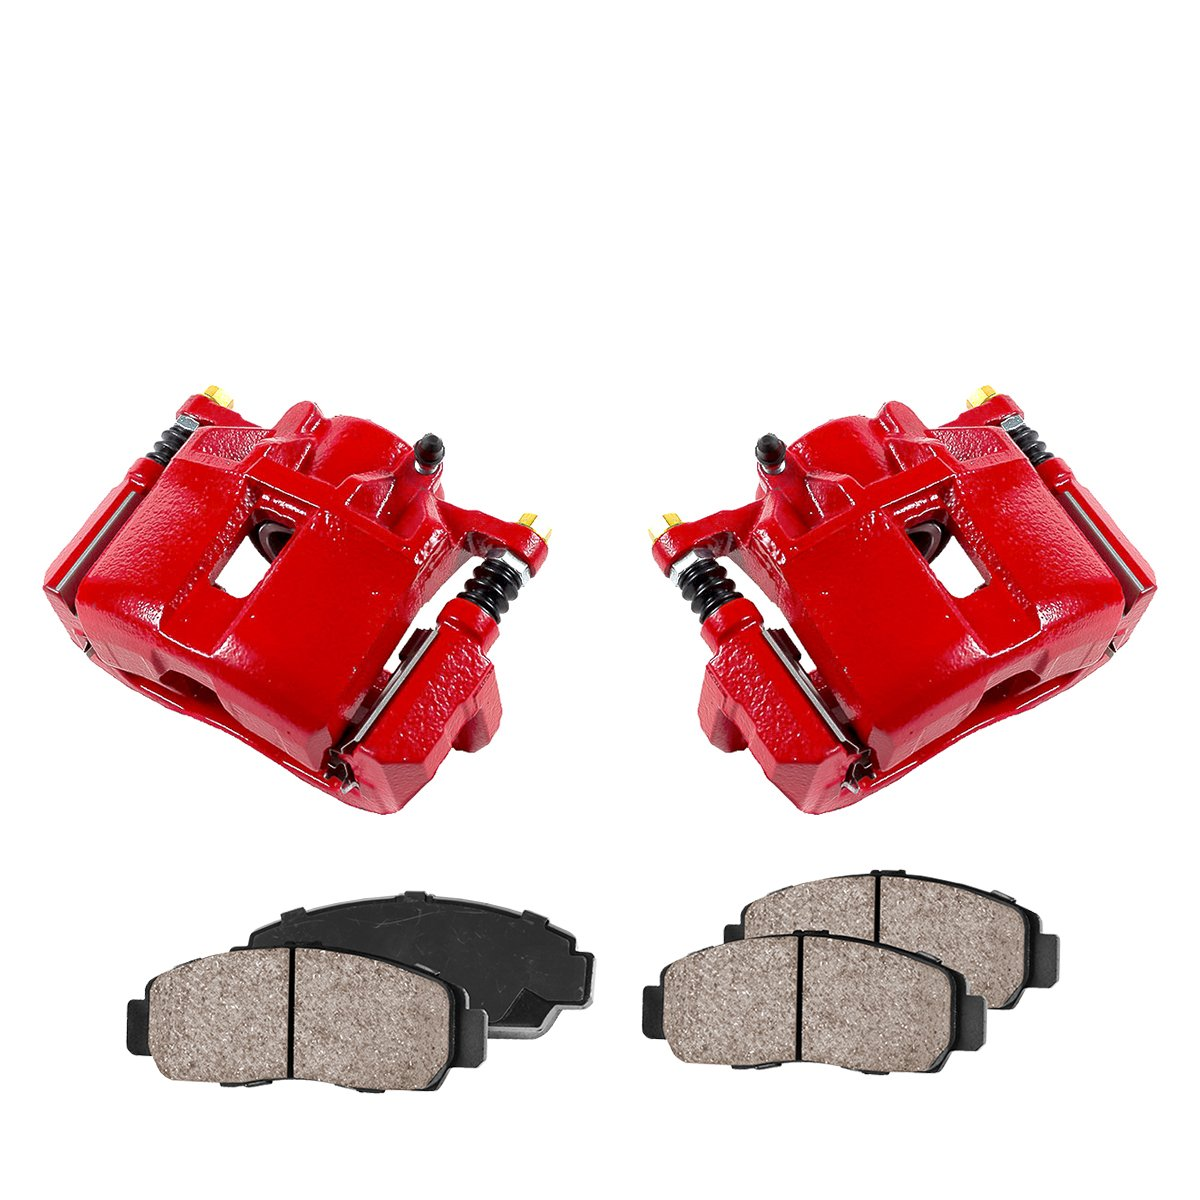 CCK11850 2 FRONT Performance Loaded Powder Coated Red Caliper Assembly Quiet Low Dust Ceramic Brake Pads